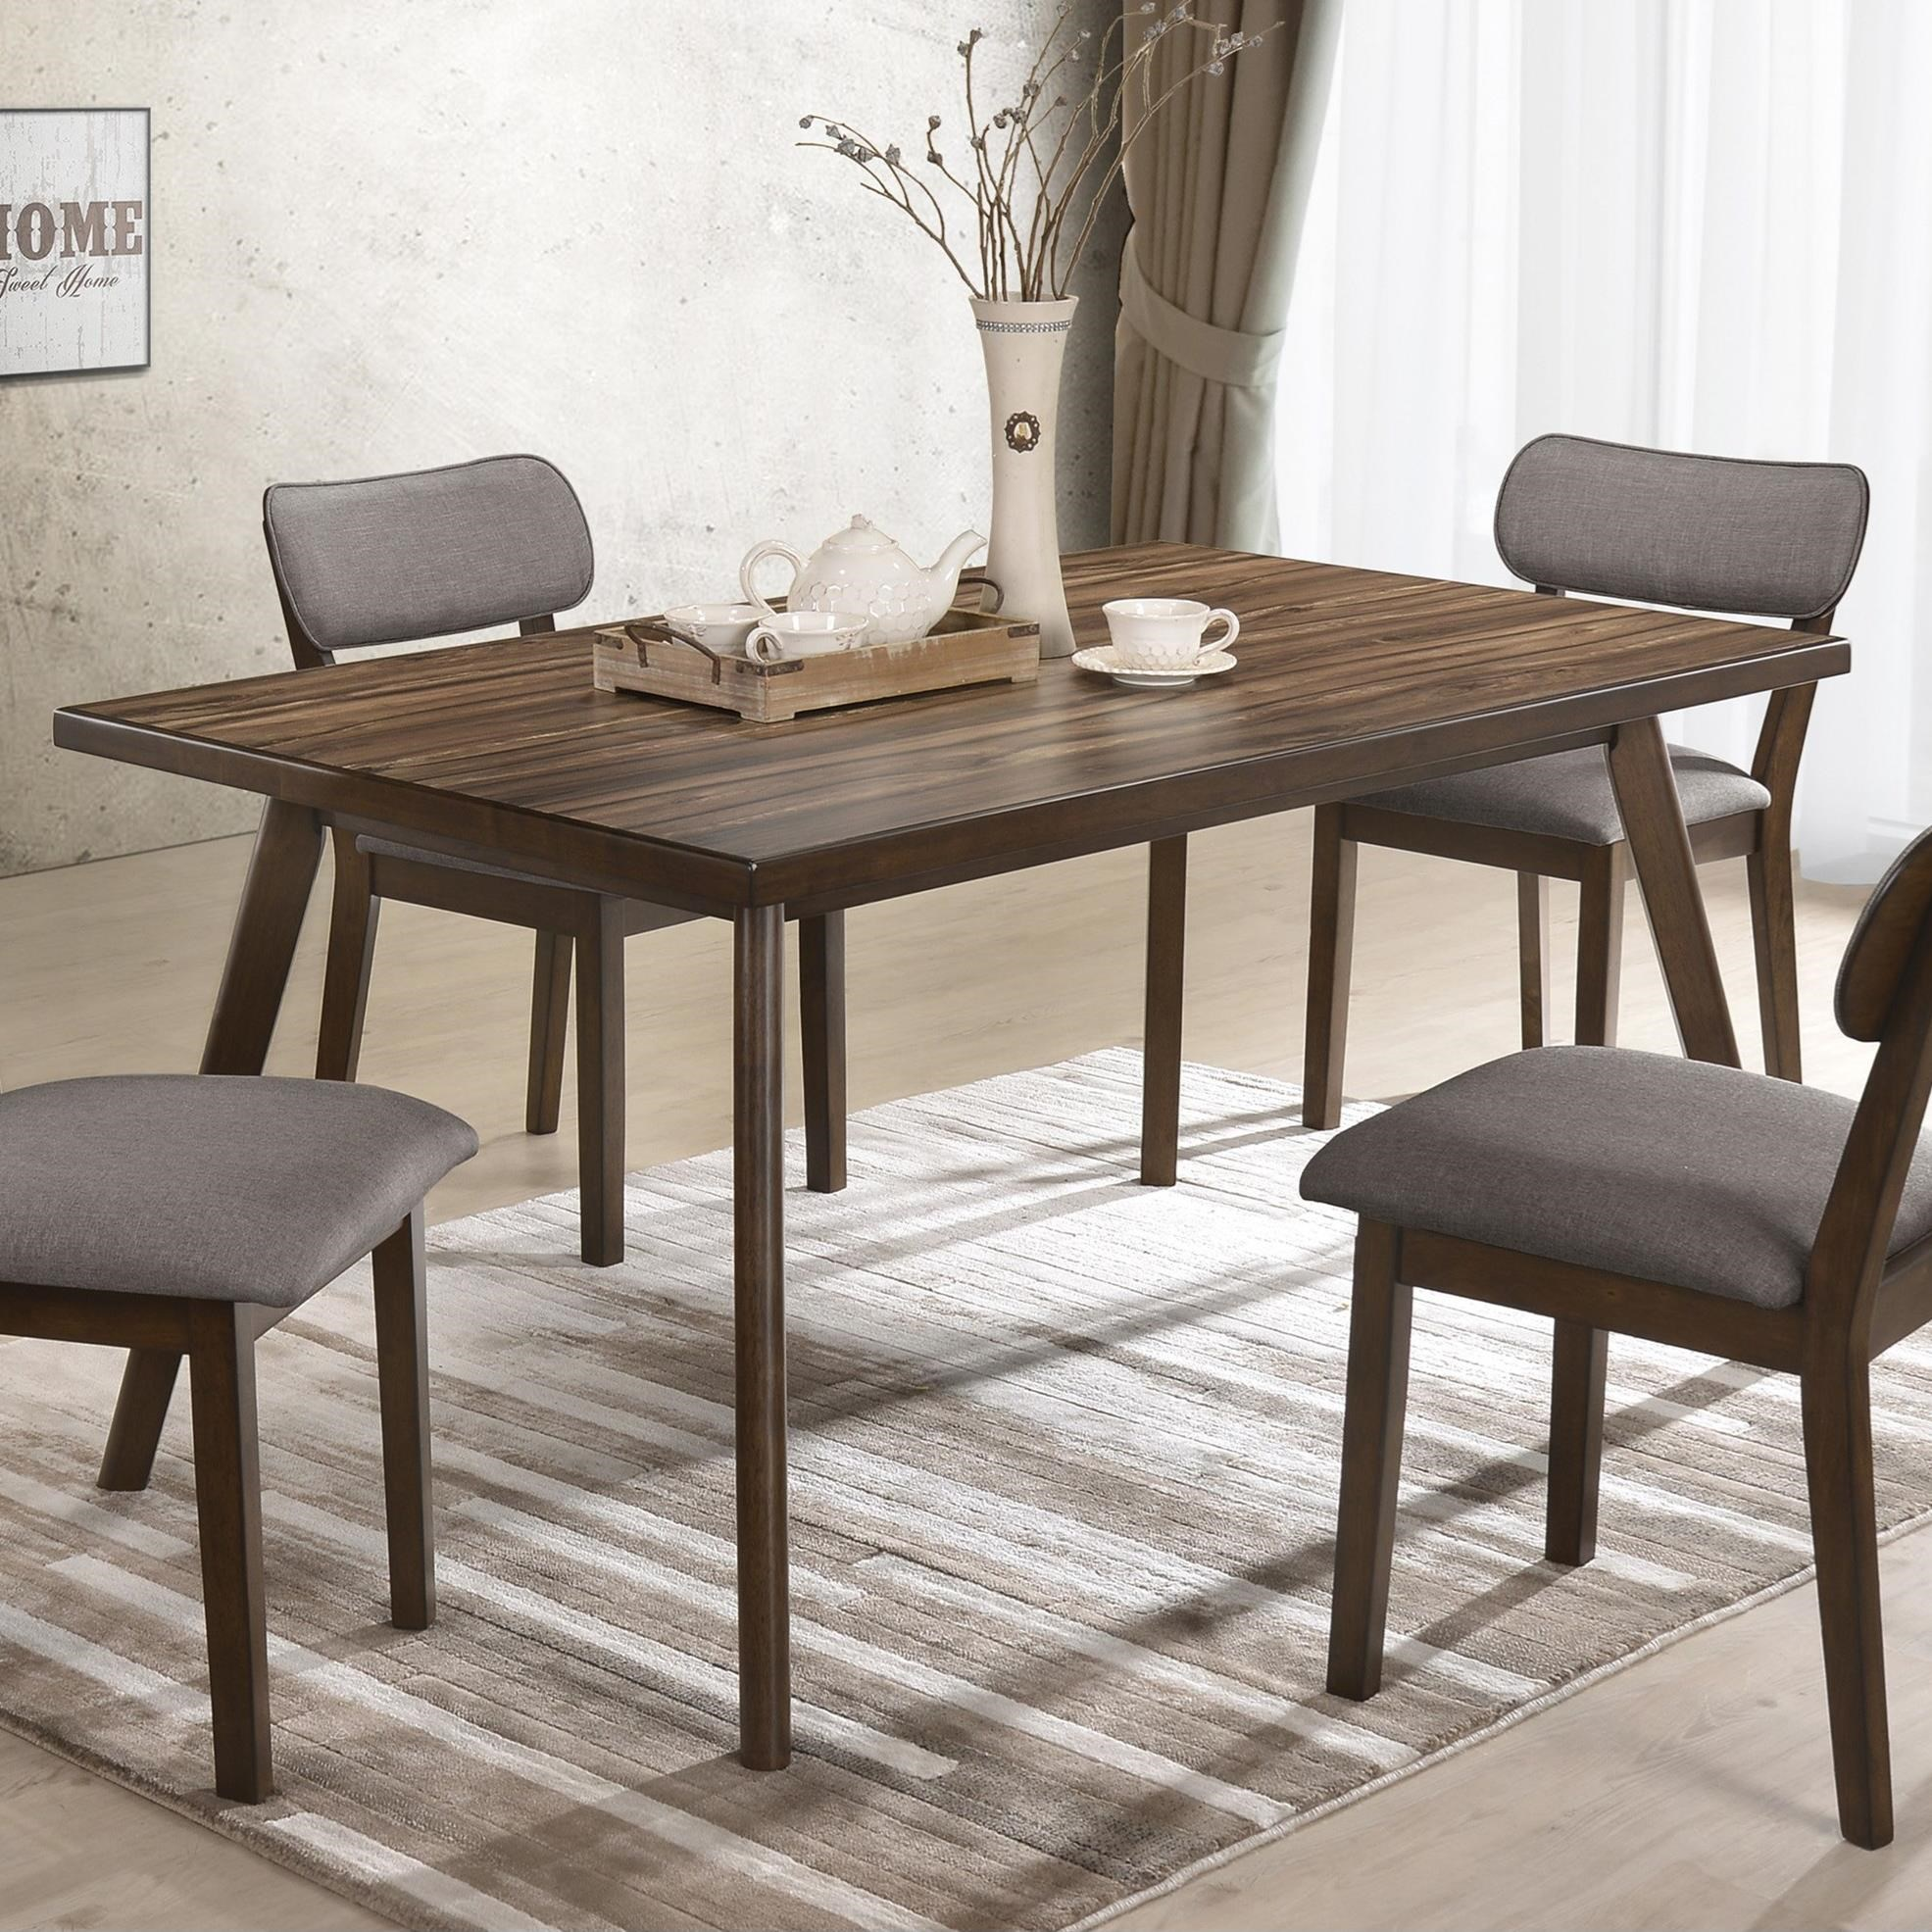 Modern Dining Room Furniture Gina Mid Century Modern Dining Table With Angled Legs By Crown Mark At Royal Furniture